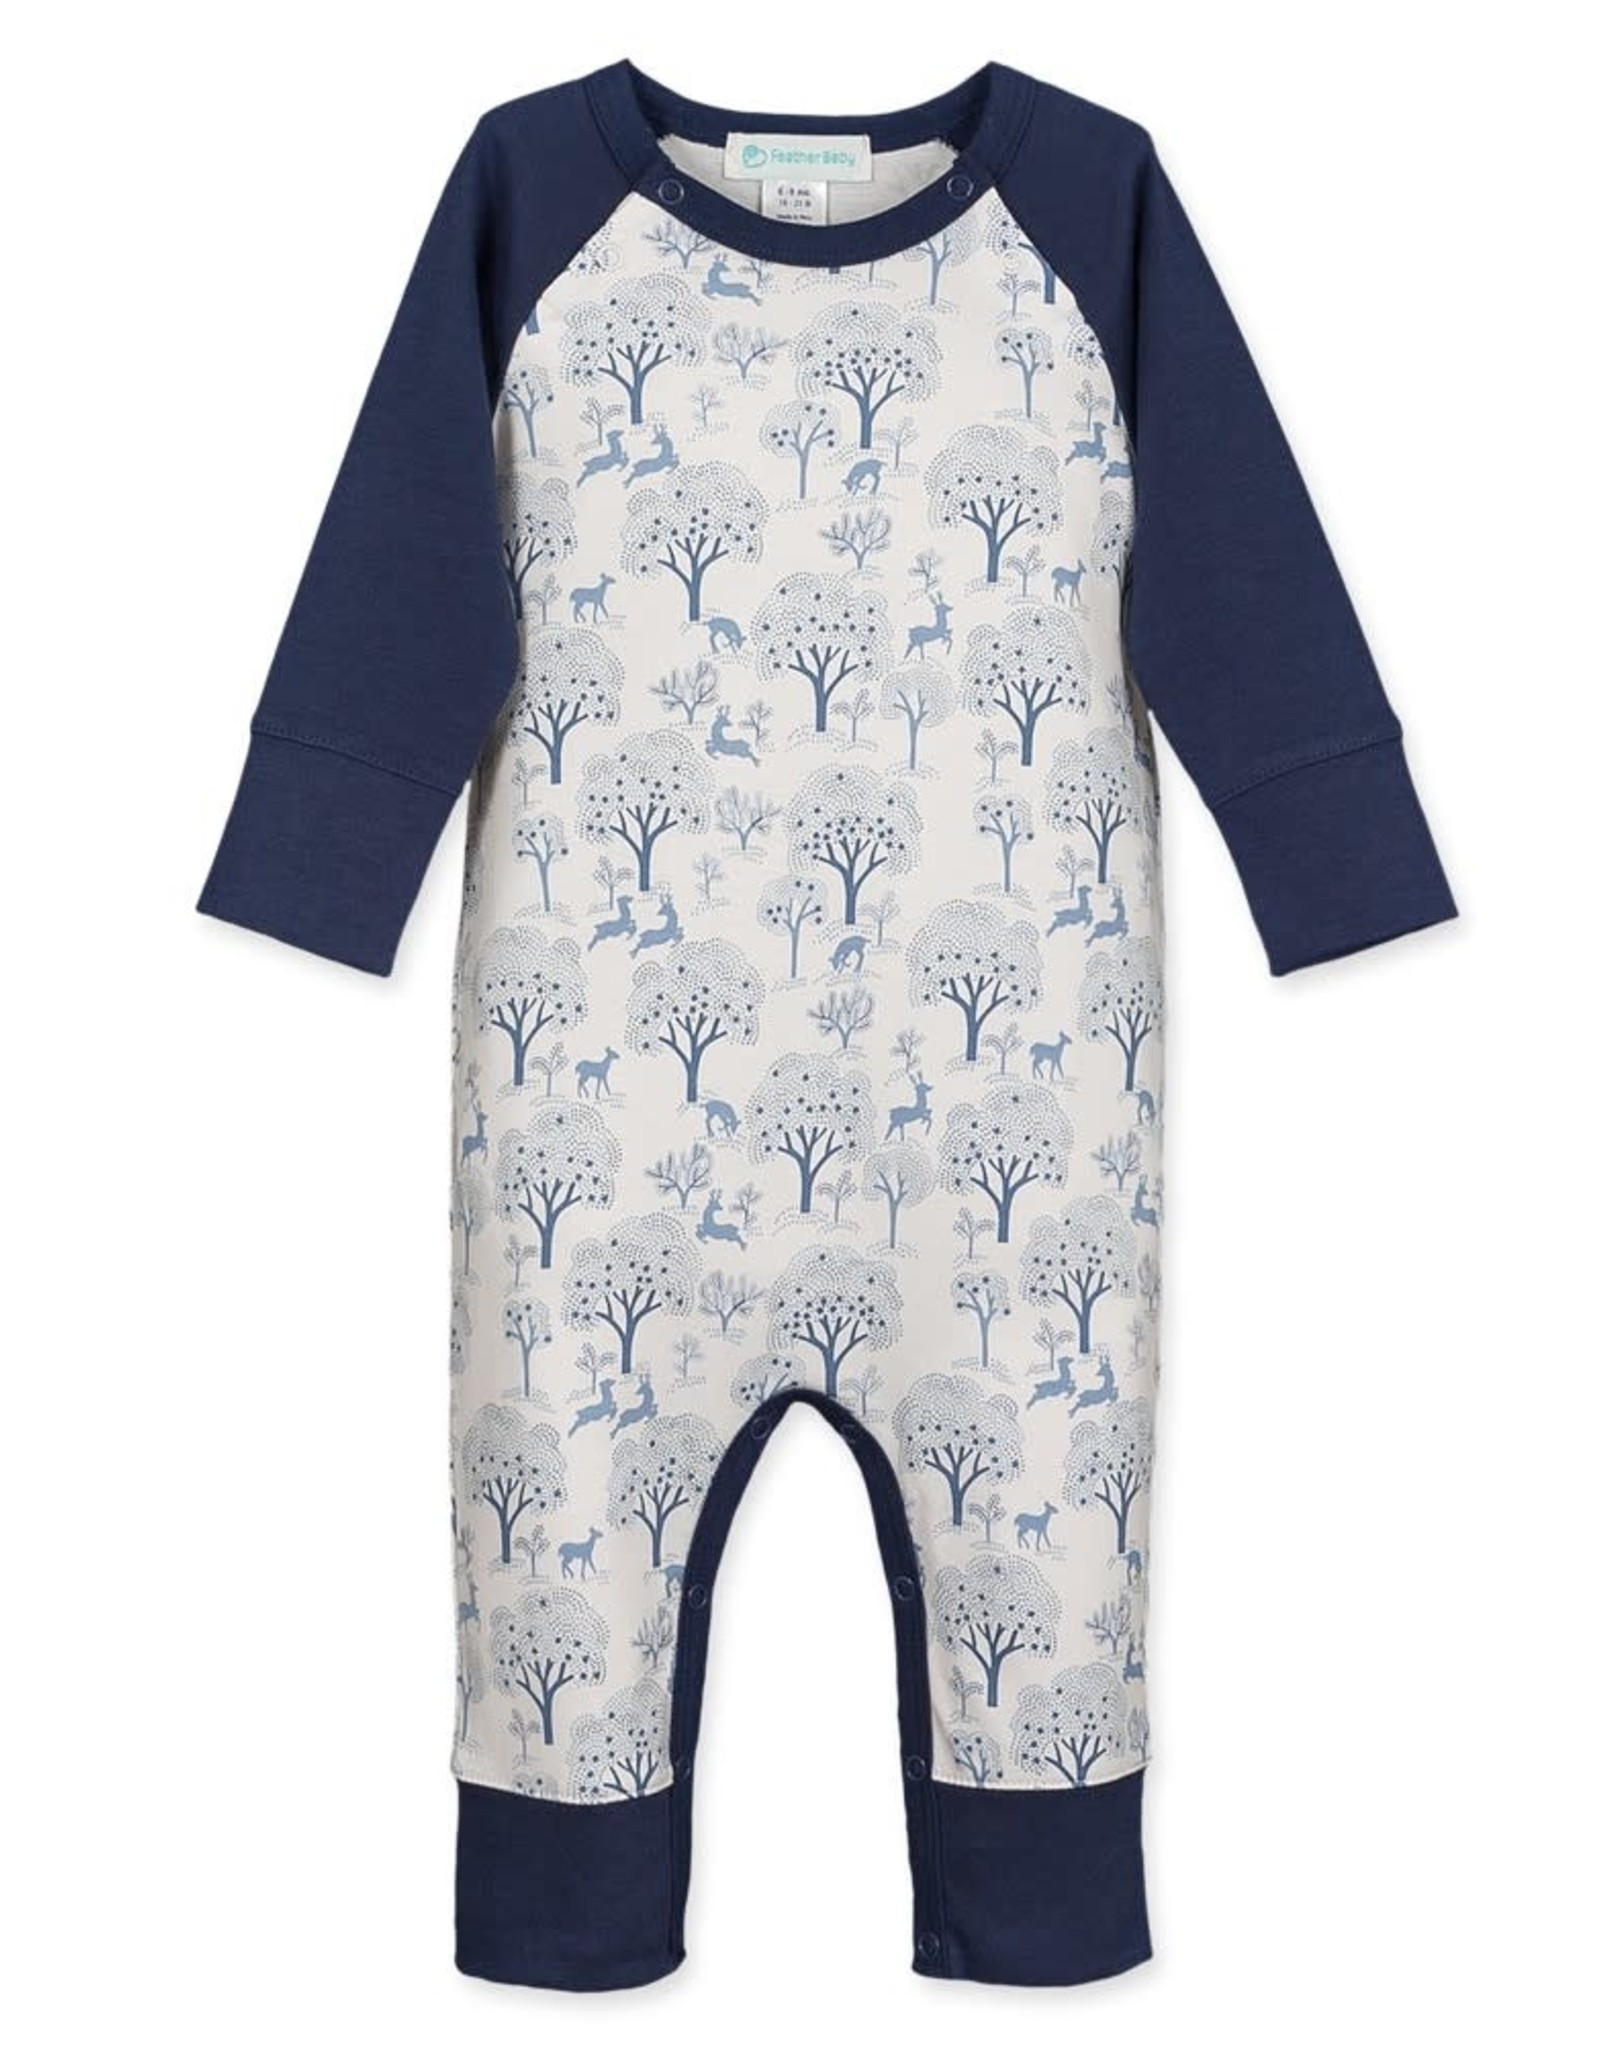 Feather Baby Sailor Sleeve Romper, Deer & Apple Trees, Indigo on White